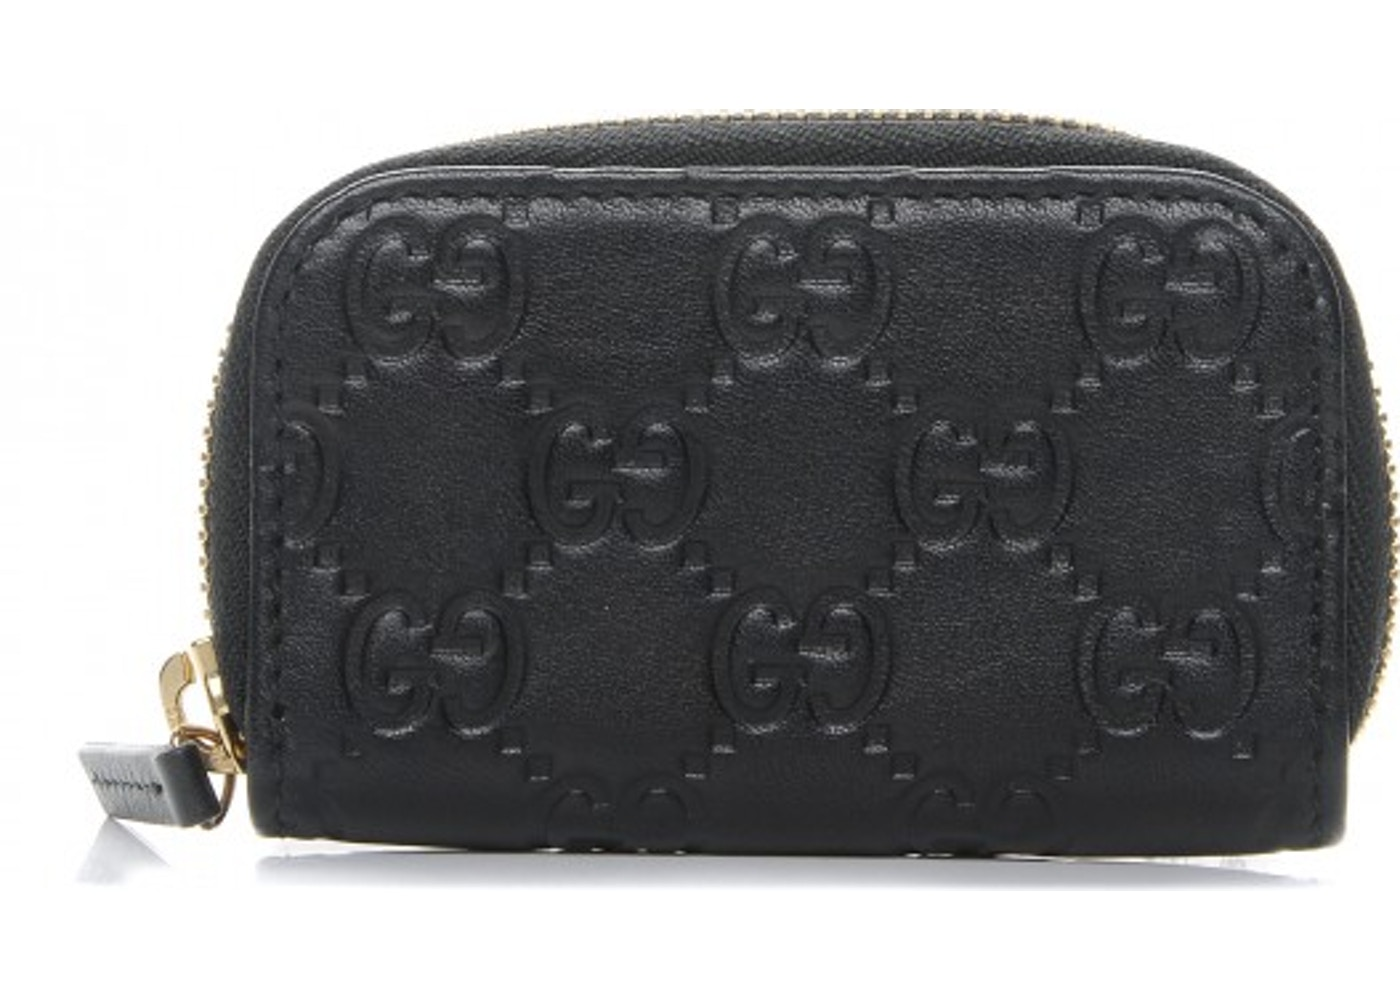 cb601615fd3 Gucci Coin Purse Zip Around Wallet Monogram Guccissima Black. Monogram  Guccissima Black